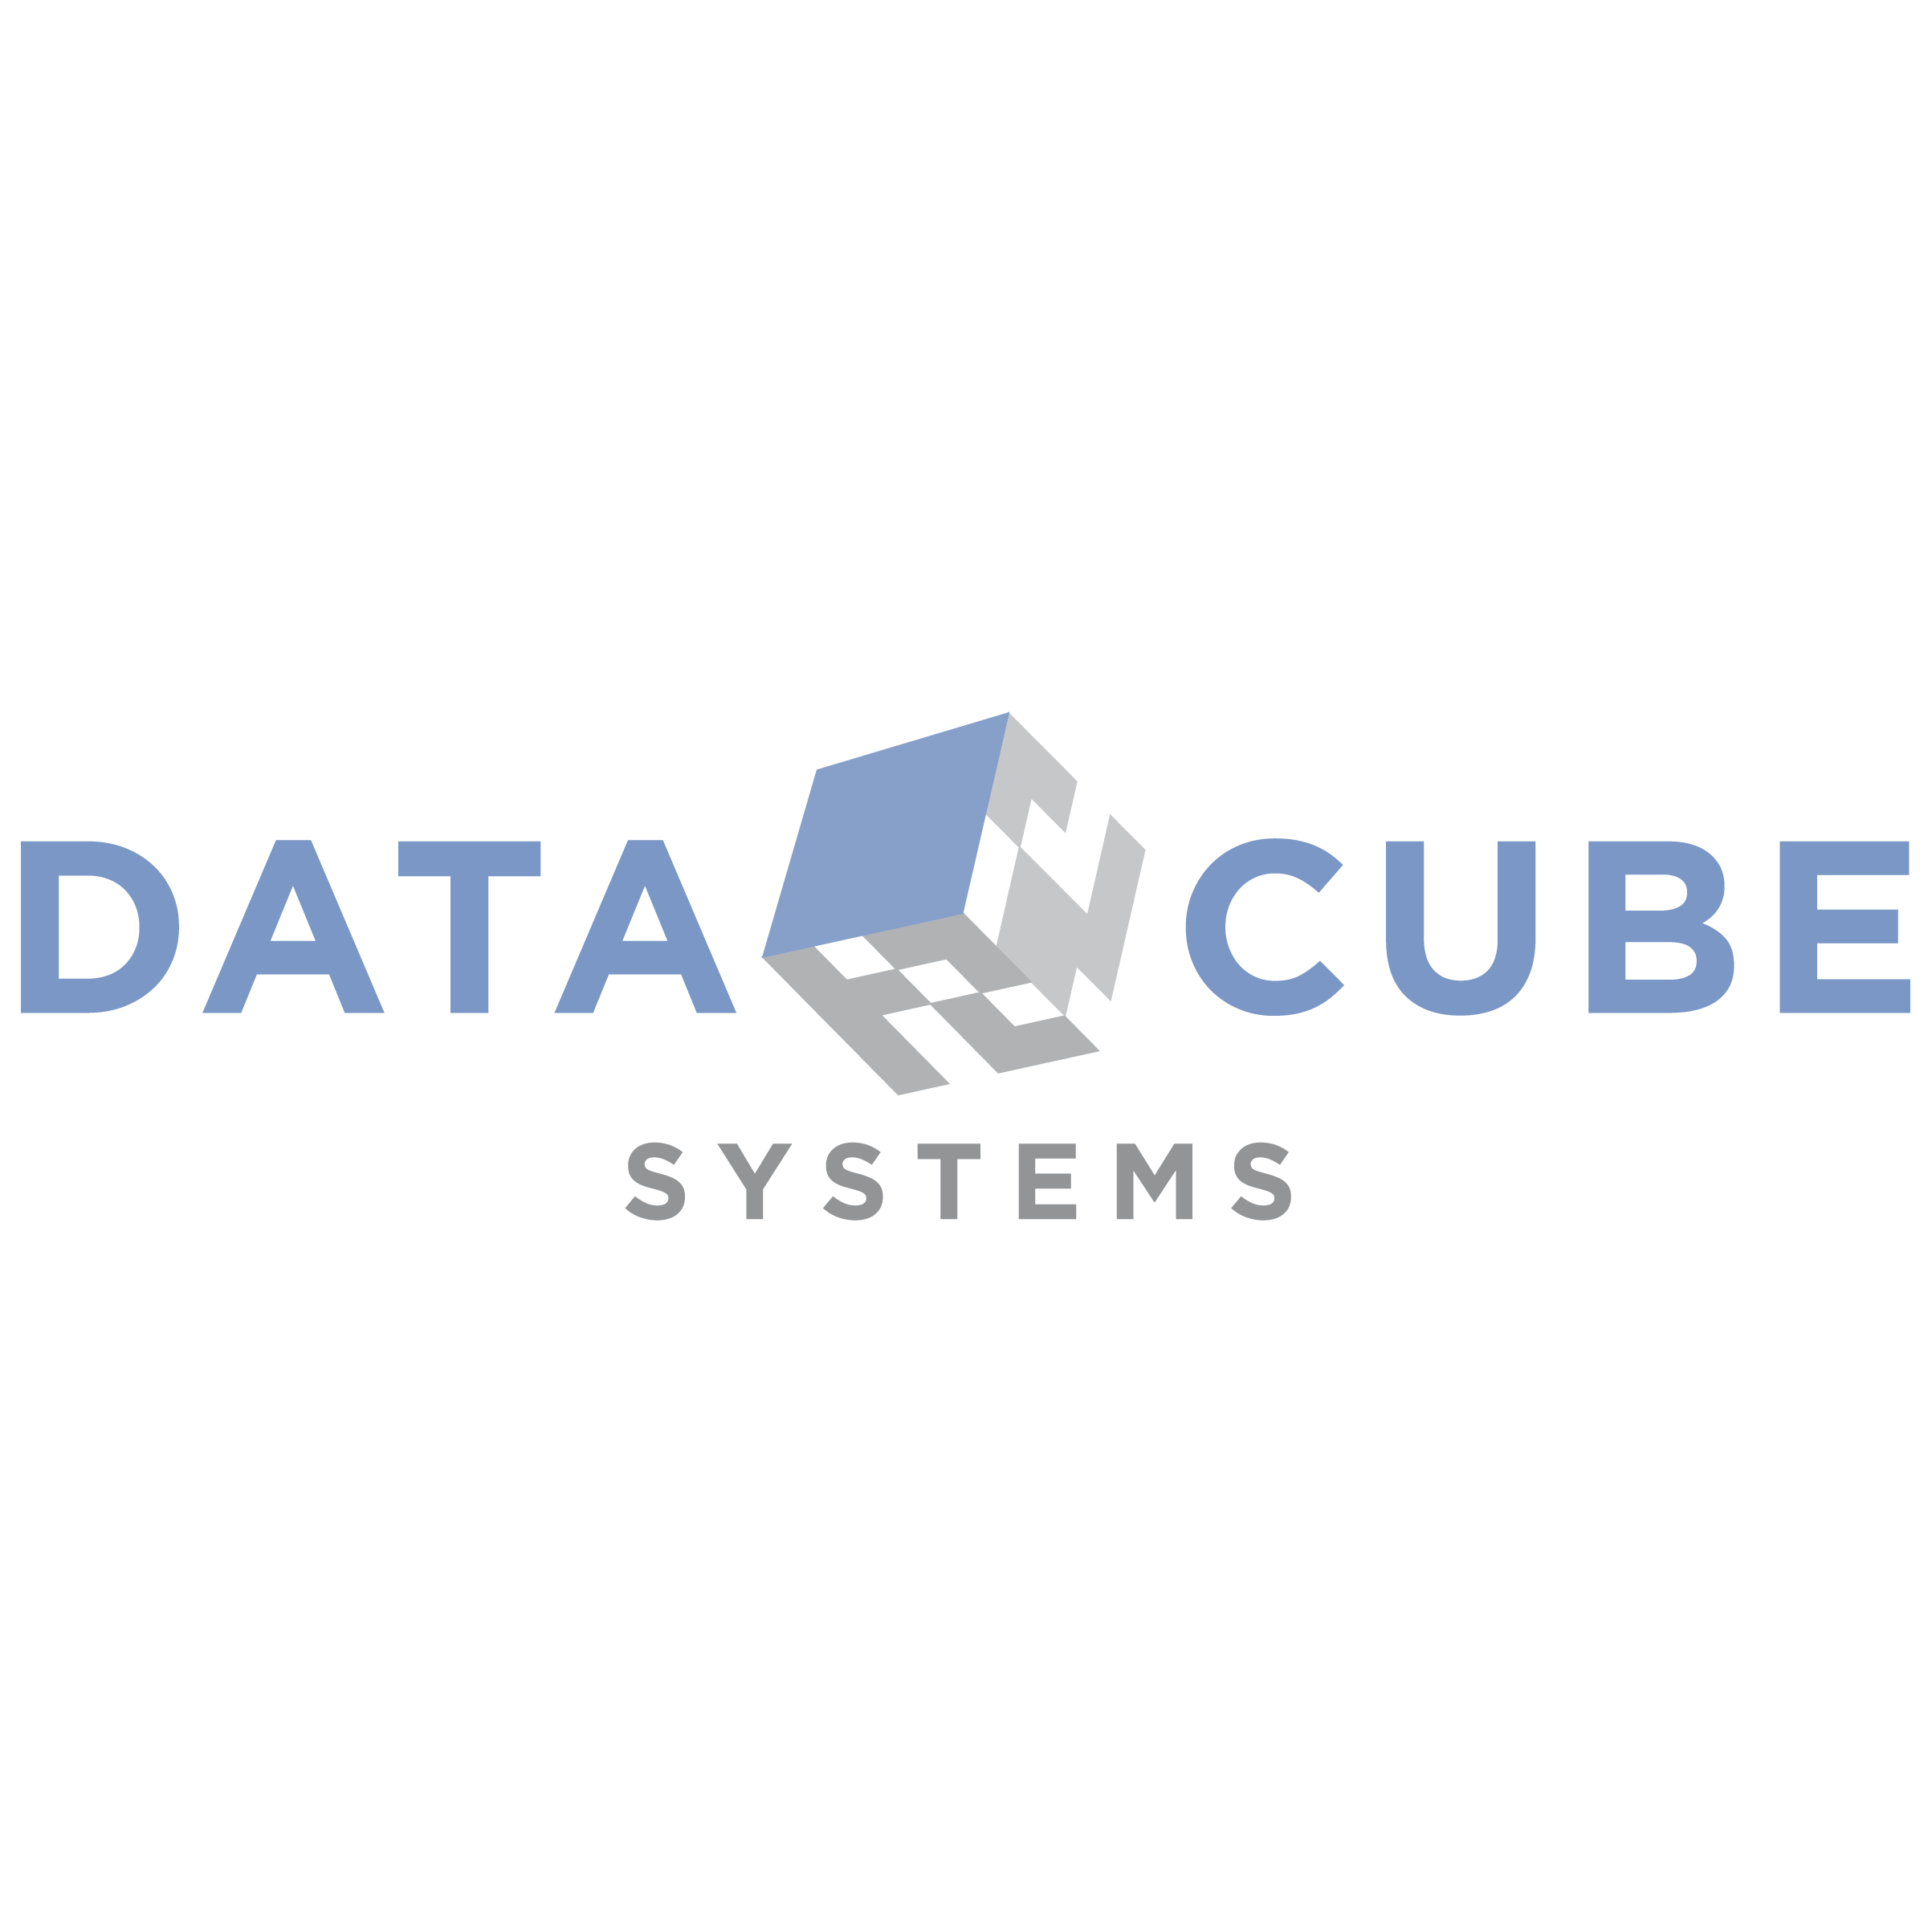 Data Cube Systems Inc IT Support, Managed IT Services, Cyber Security, VoIP, Cloud, Website, Florida